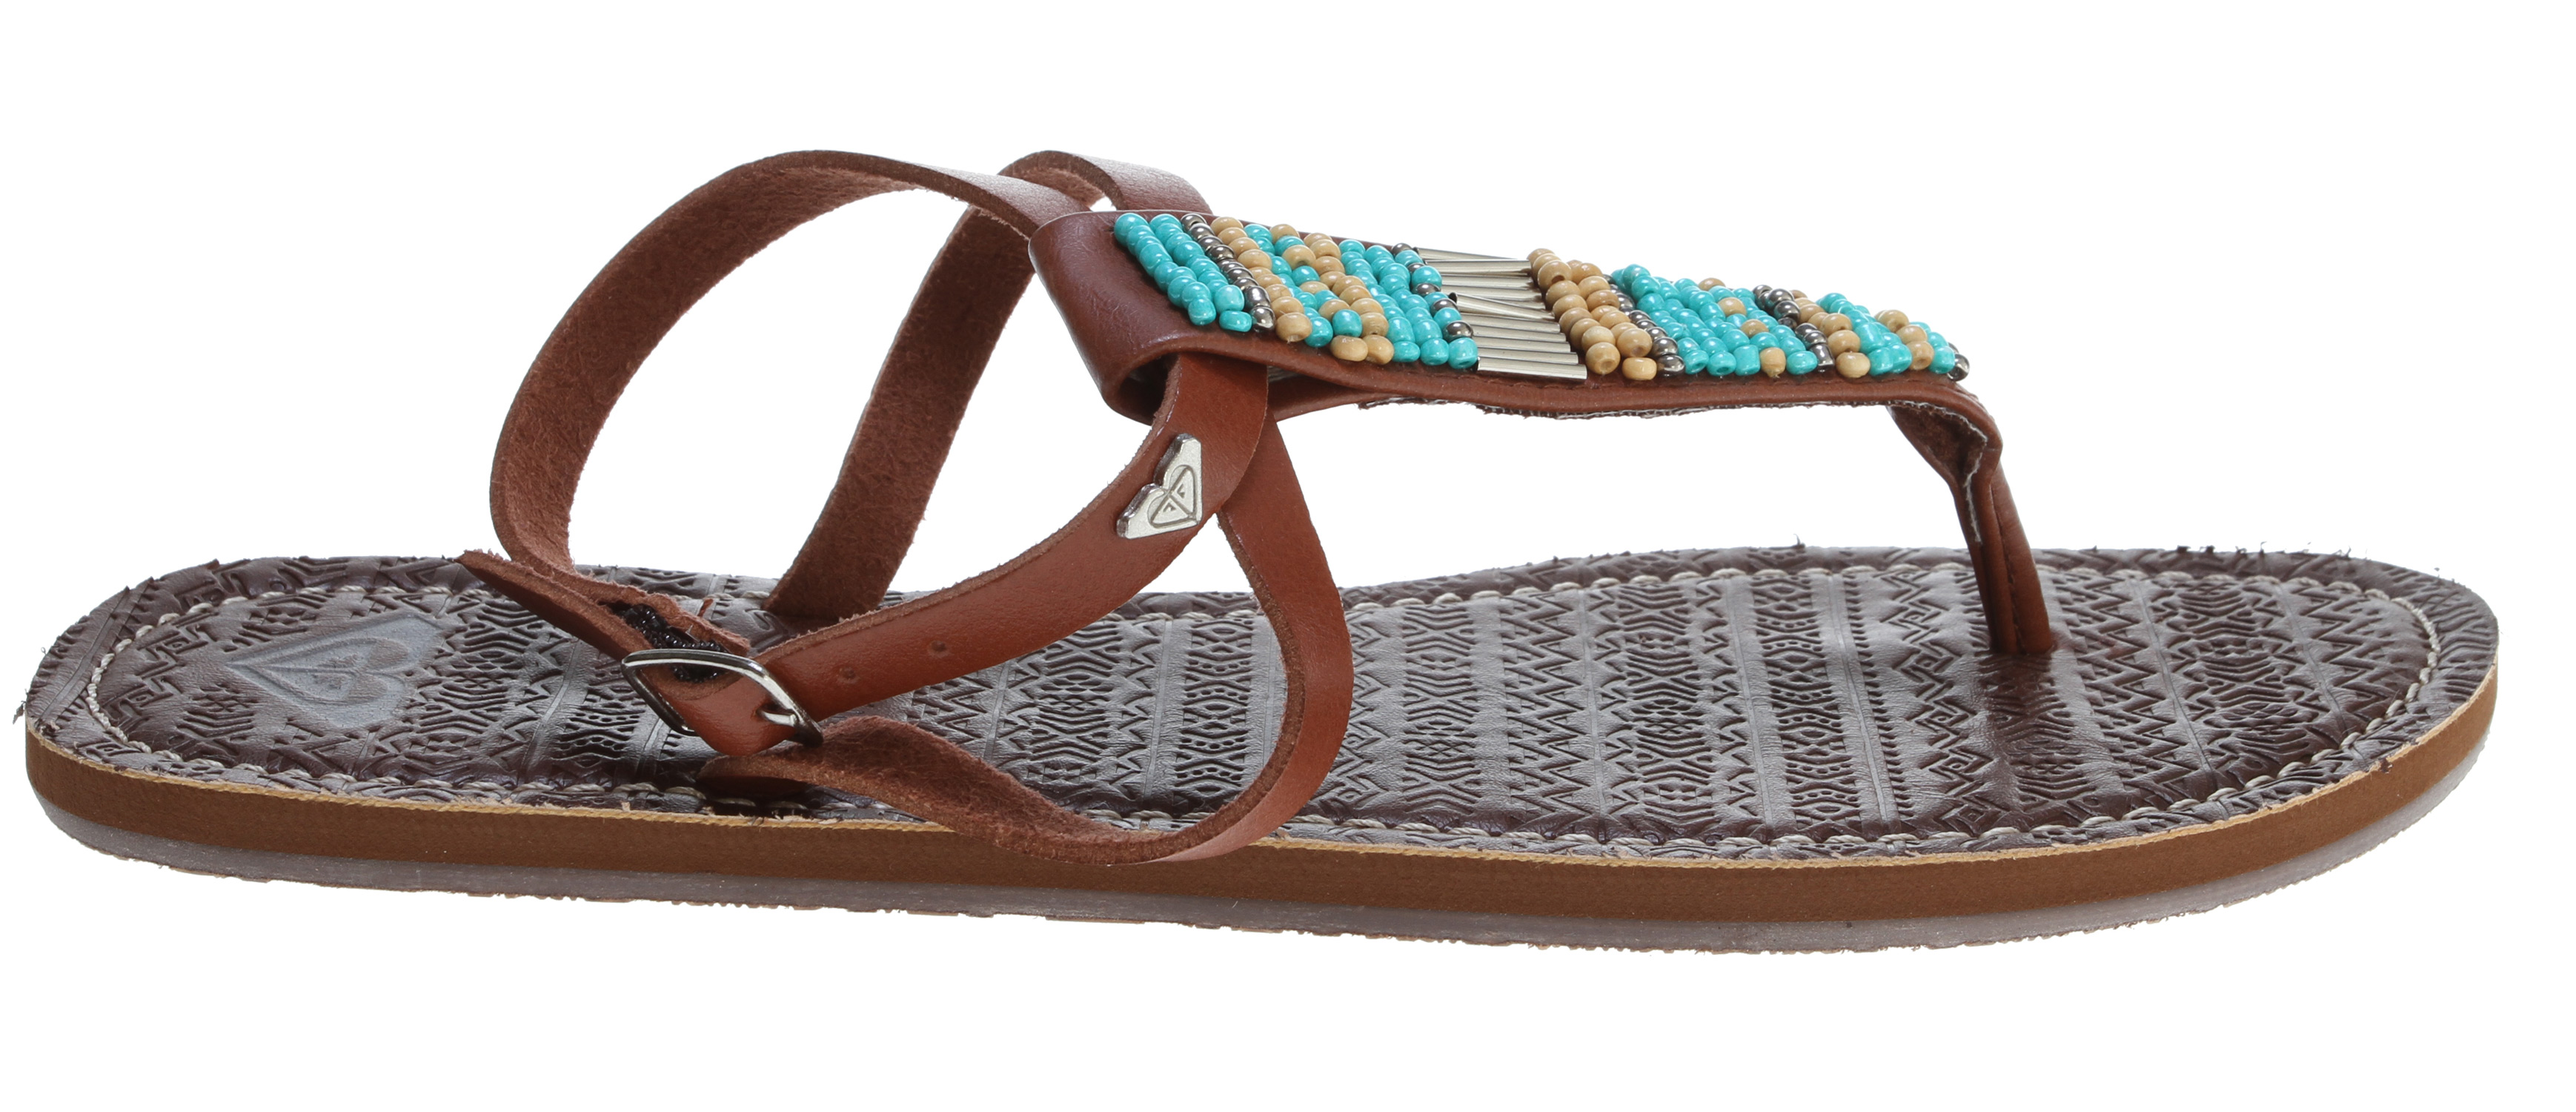 Surf Key Features of the Roxy Antigua Sandals: Wood and bead ornamented t-strap sandal Micro suede lining Embossed footbed Soft EVA insole TPR outsole - $26.95